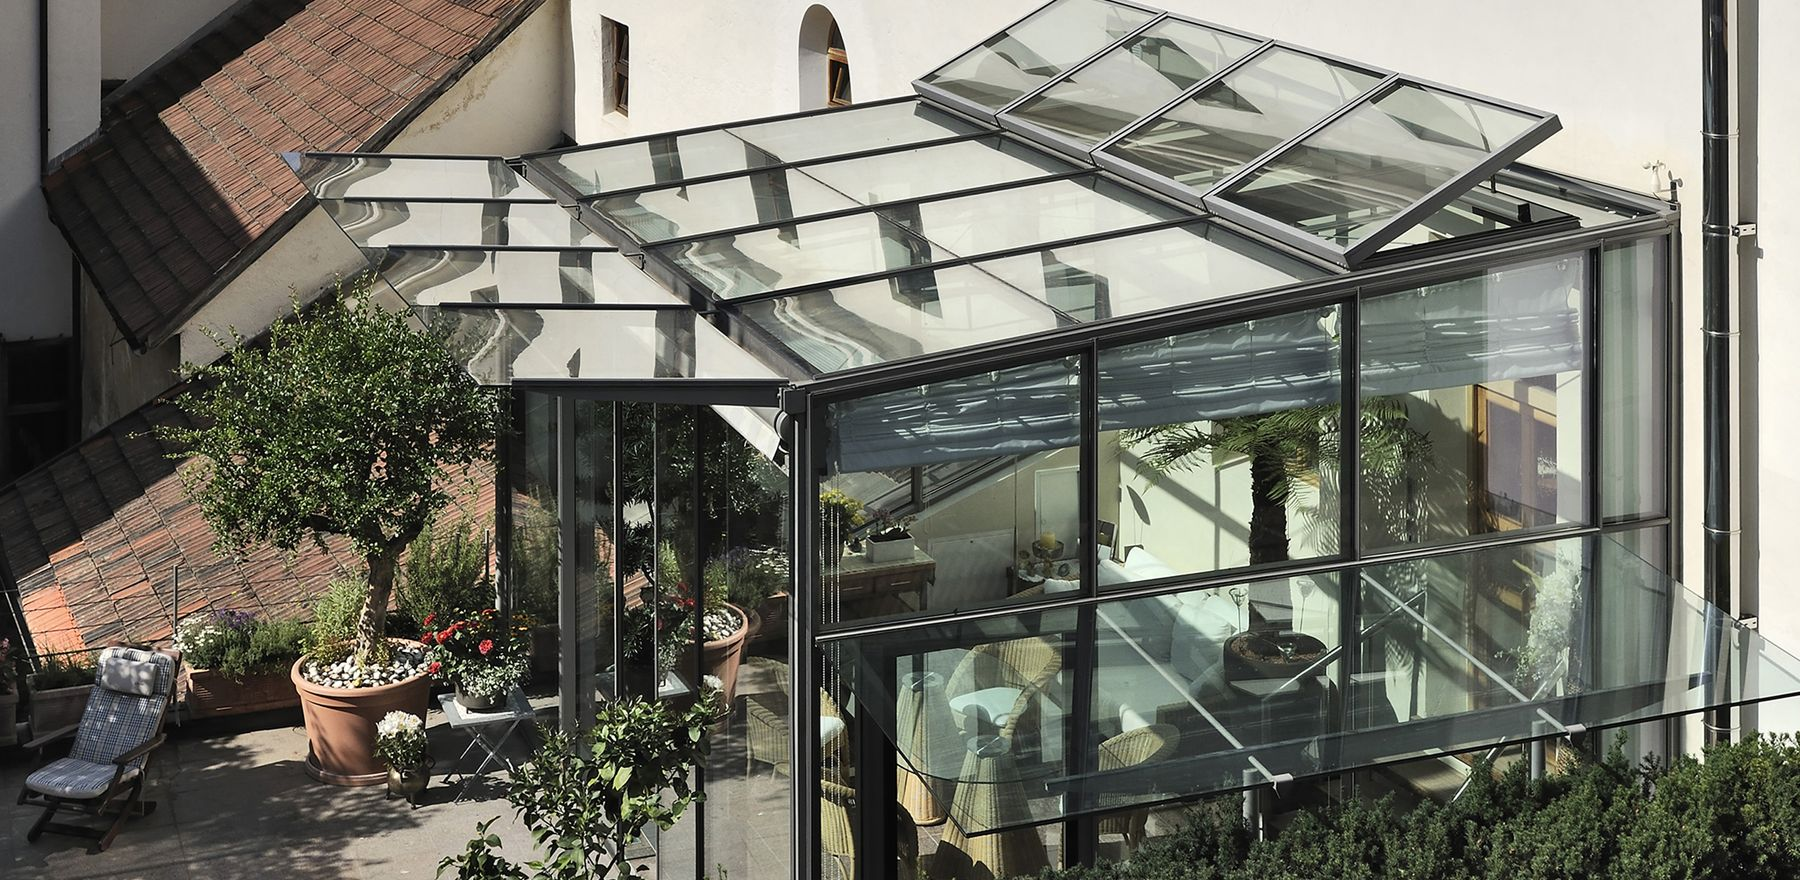 jardins d 39 hiver. Black Bedroom Furniture Sets. Home Design Ideas